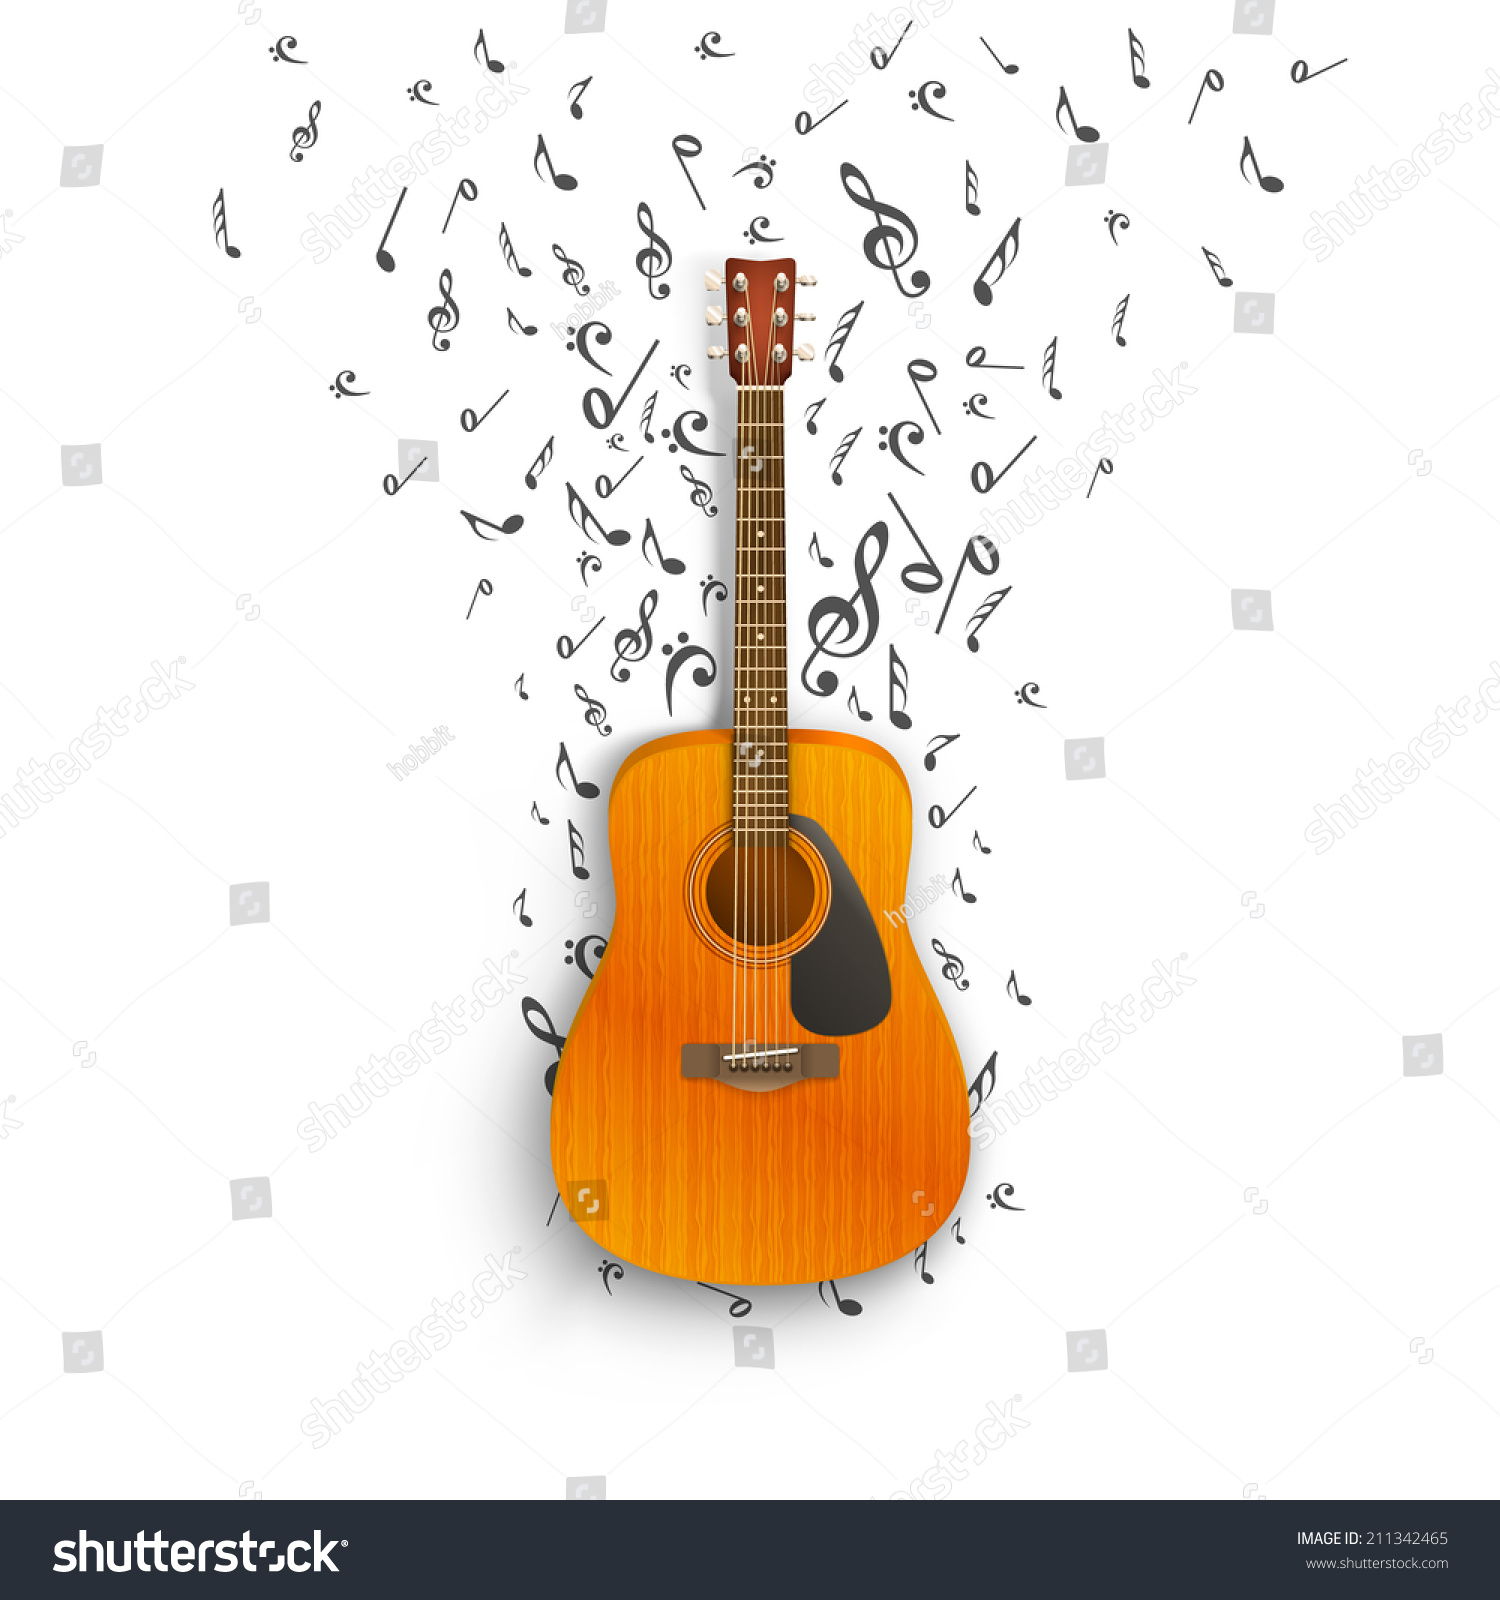 Notes Off Guitar Fly Icon Stock Vector Royalty Free To String A Guitarguitar Technique Electric Acoustic Of The Illustration